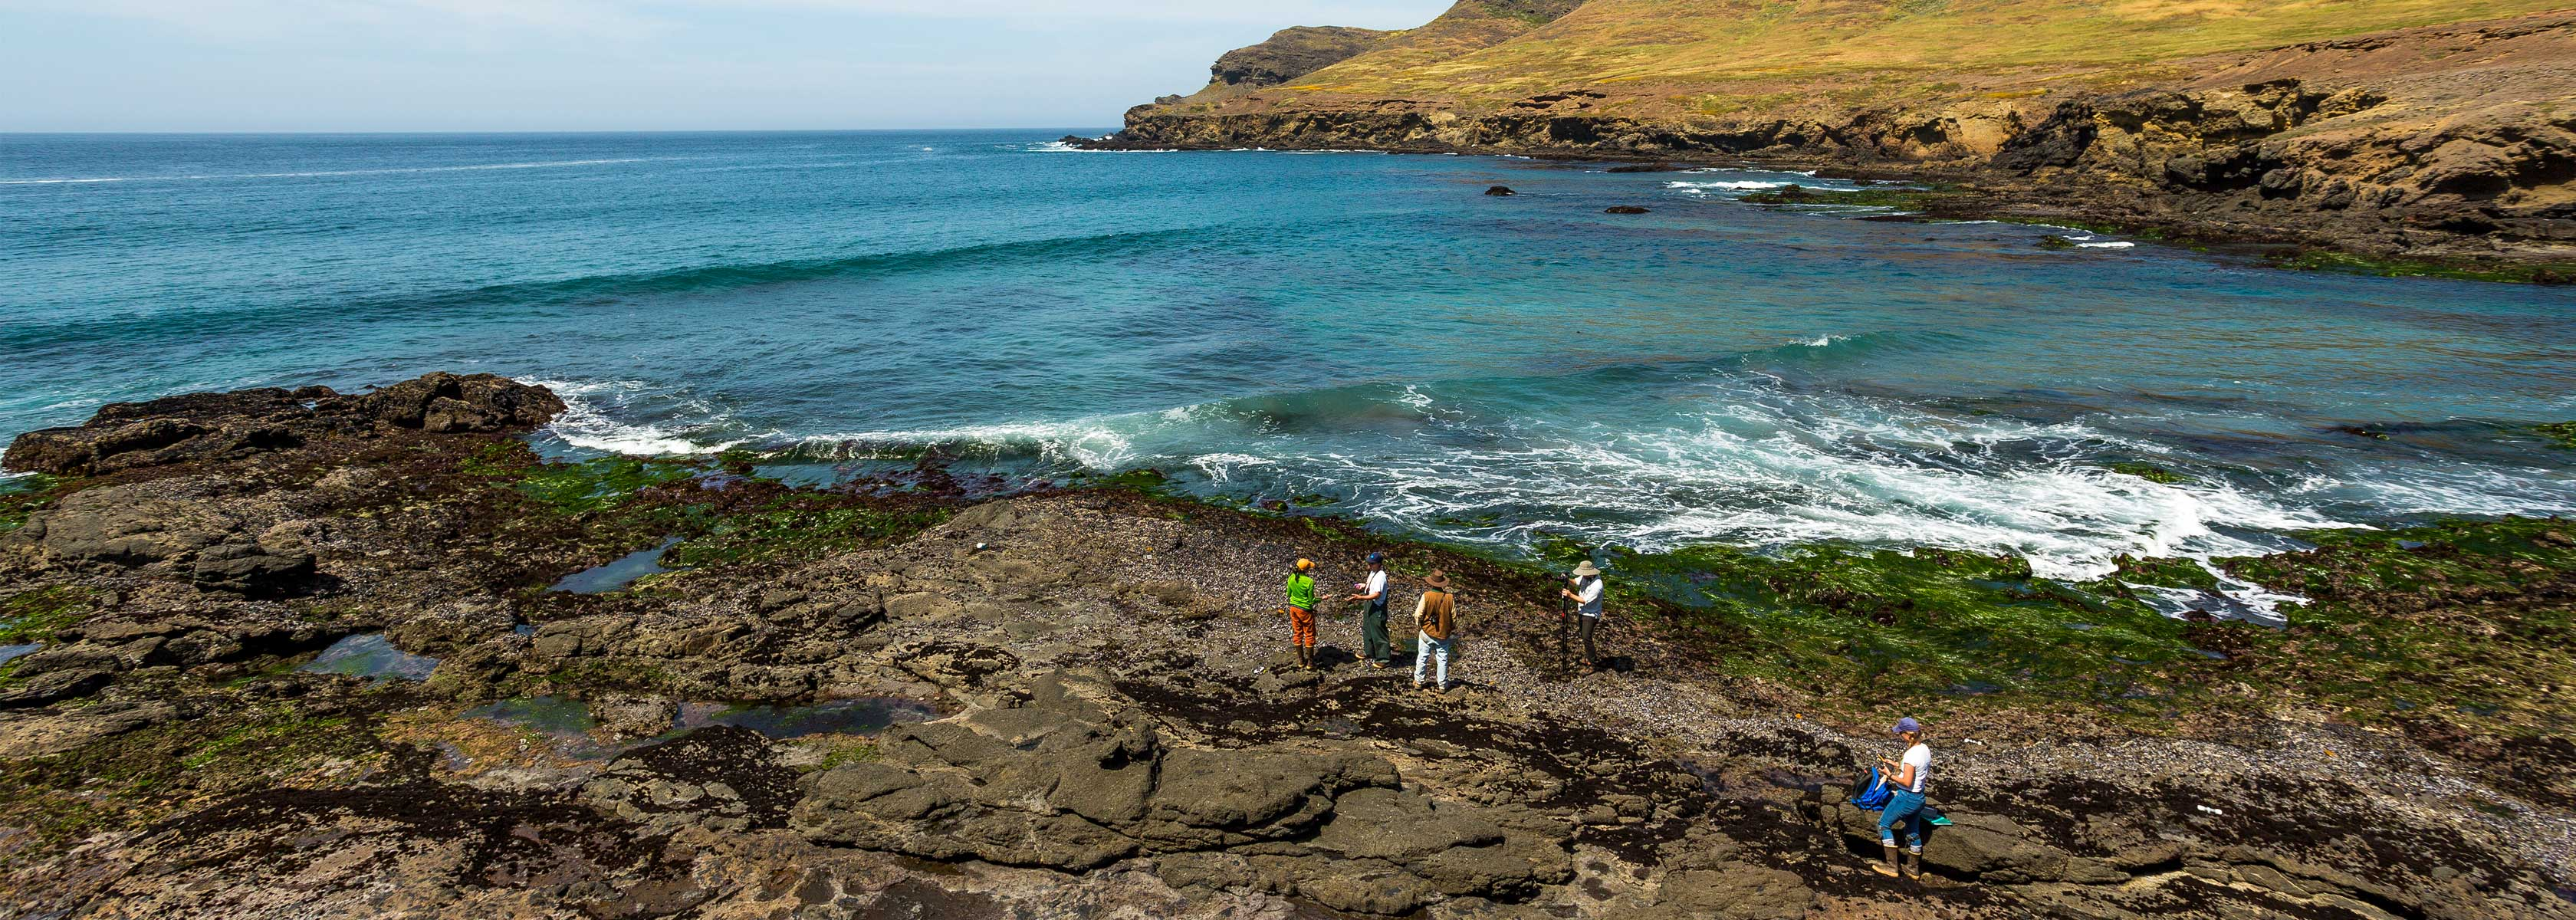 Santa Cruz Island research